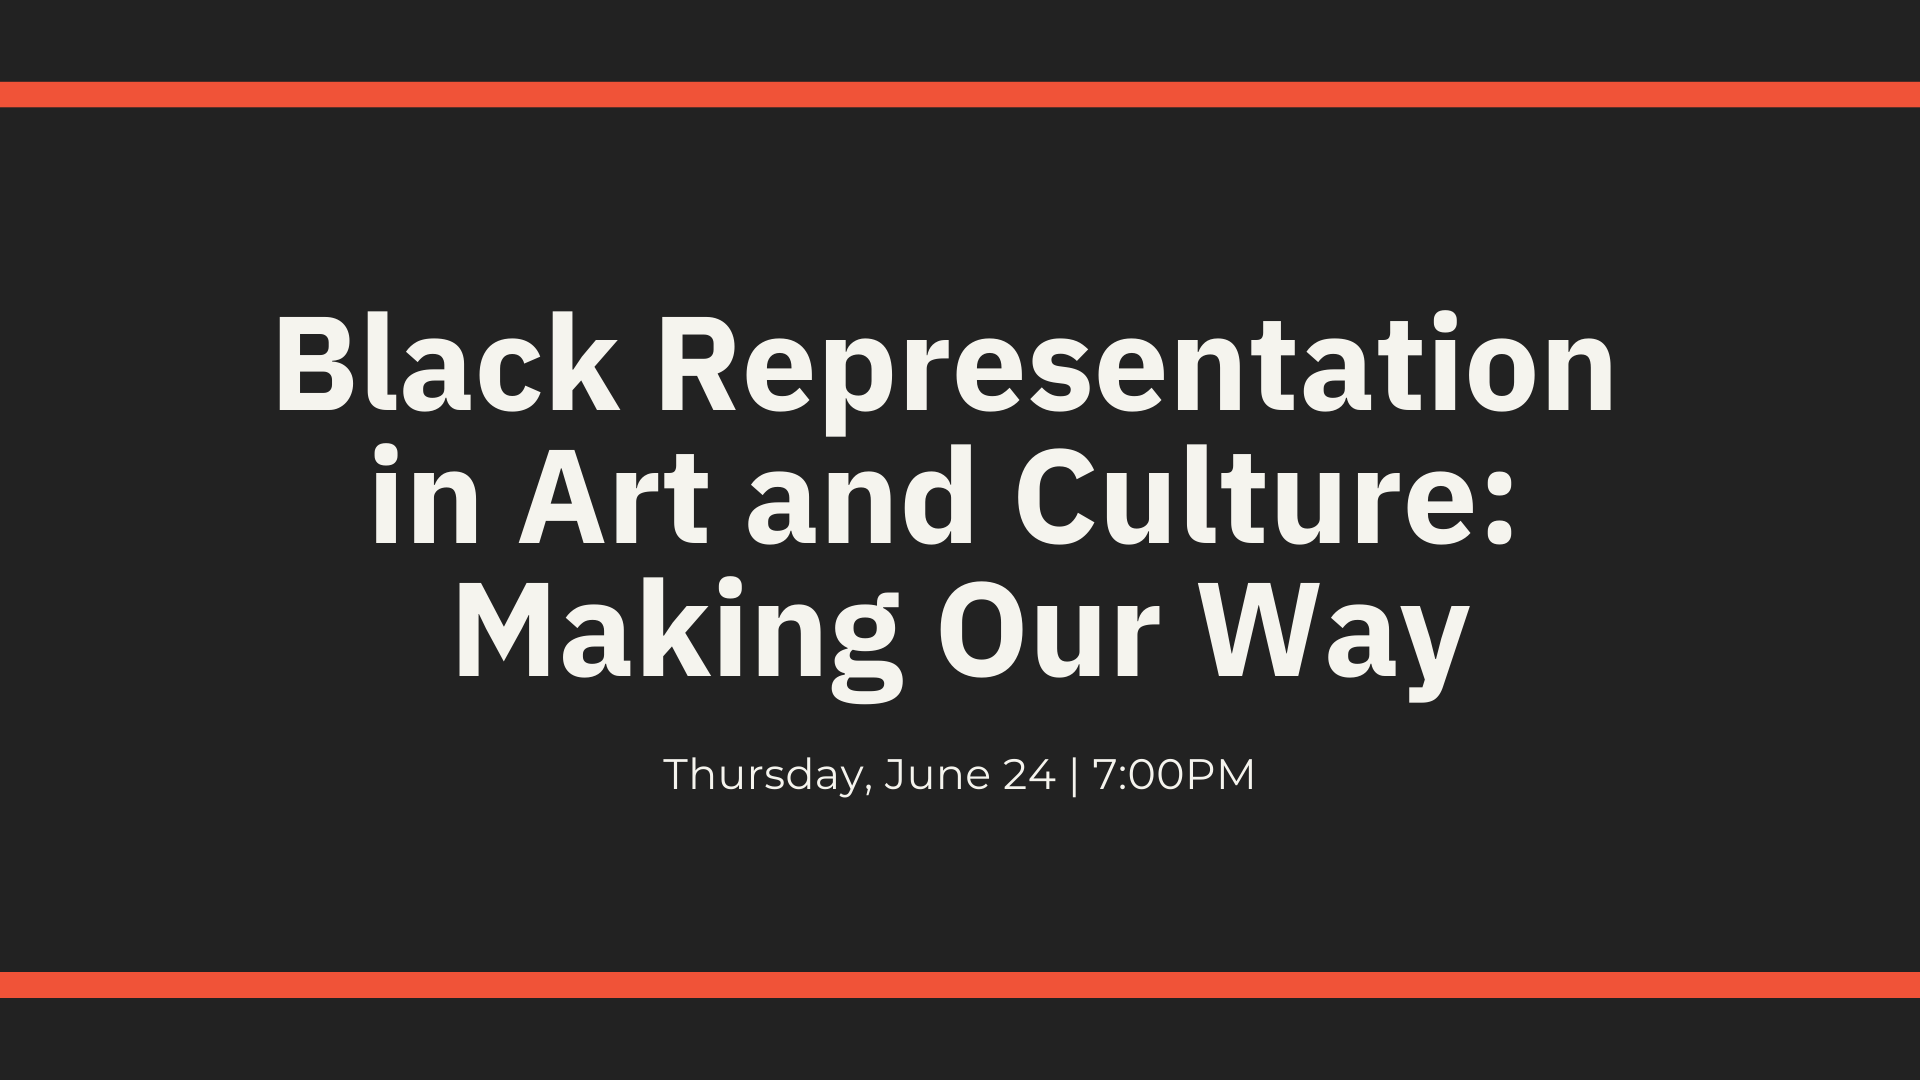 Black Representation in Art and Culture: Making Our Way